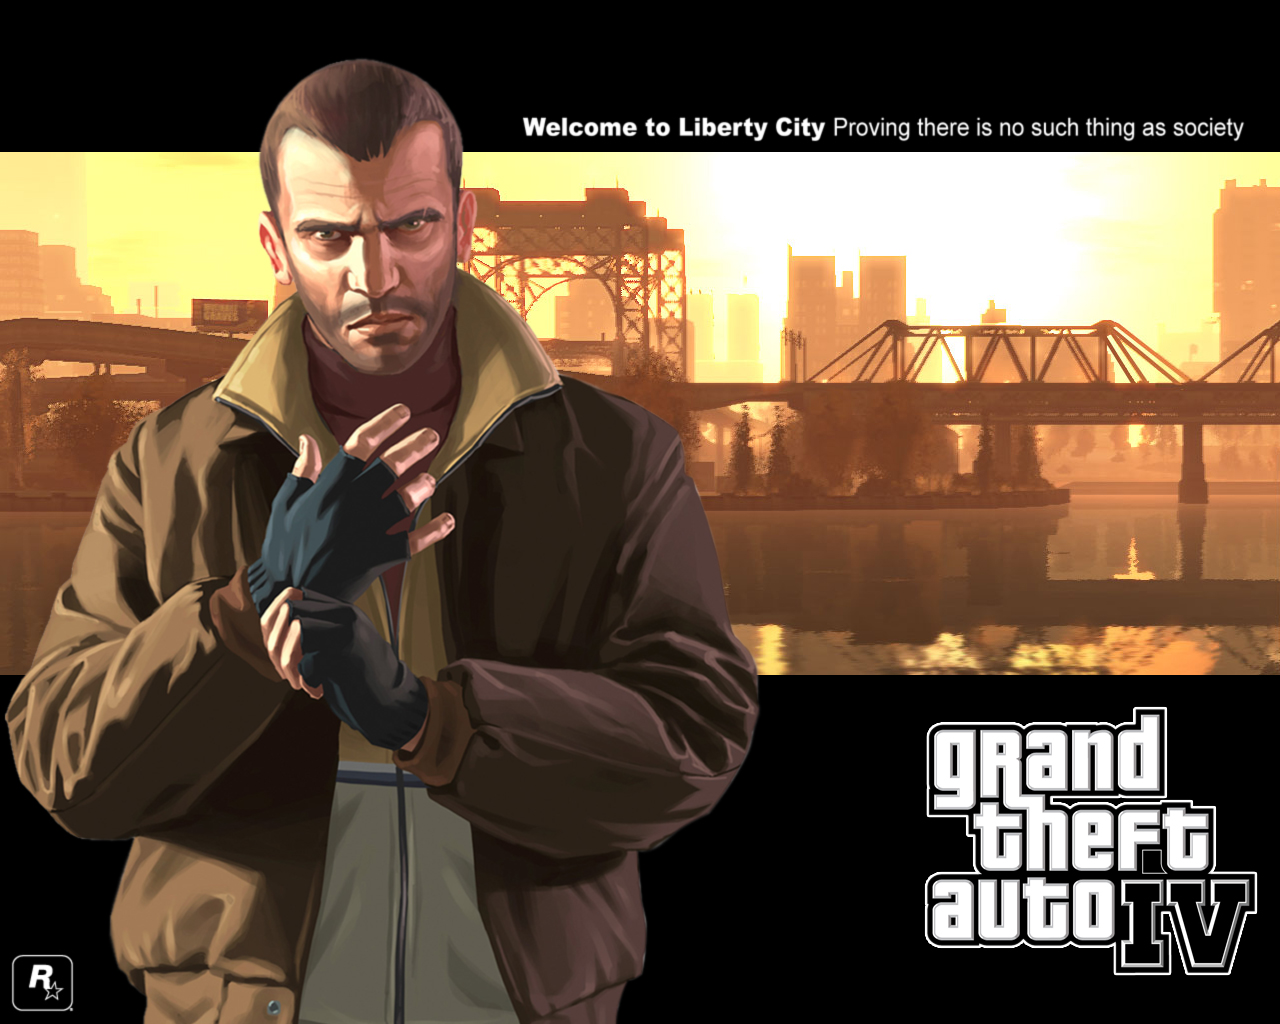 Grand Theft Auto IV wallpaper by pacee 1280x1024